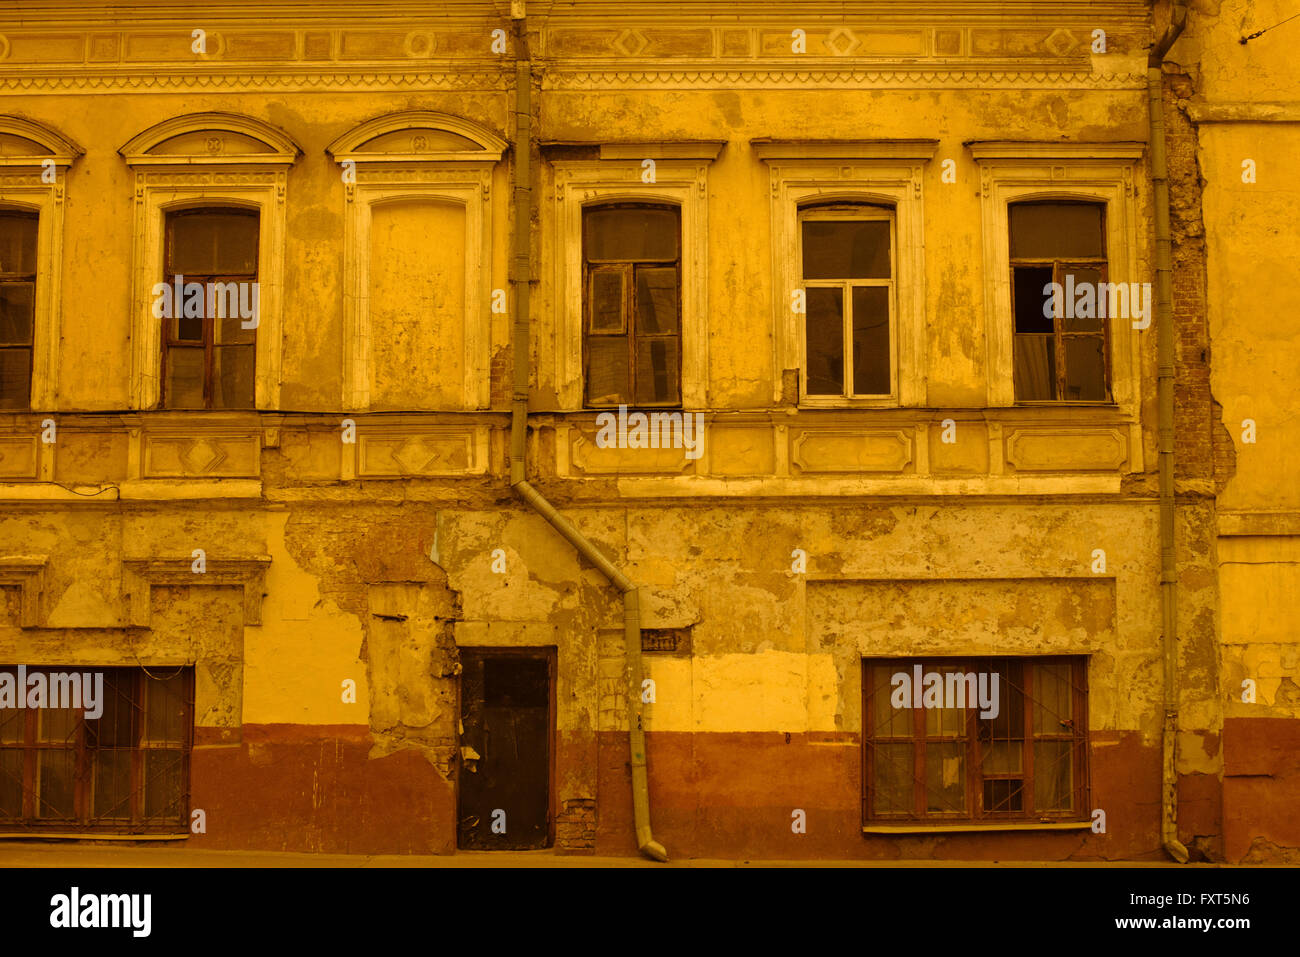 Old abandoned house in Moscow city center (Savinskiy pass). Image is captured with orange filter to minimize colours - Stock Image